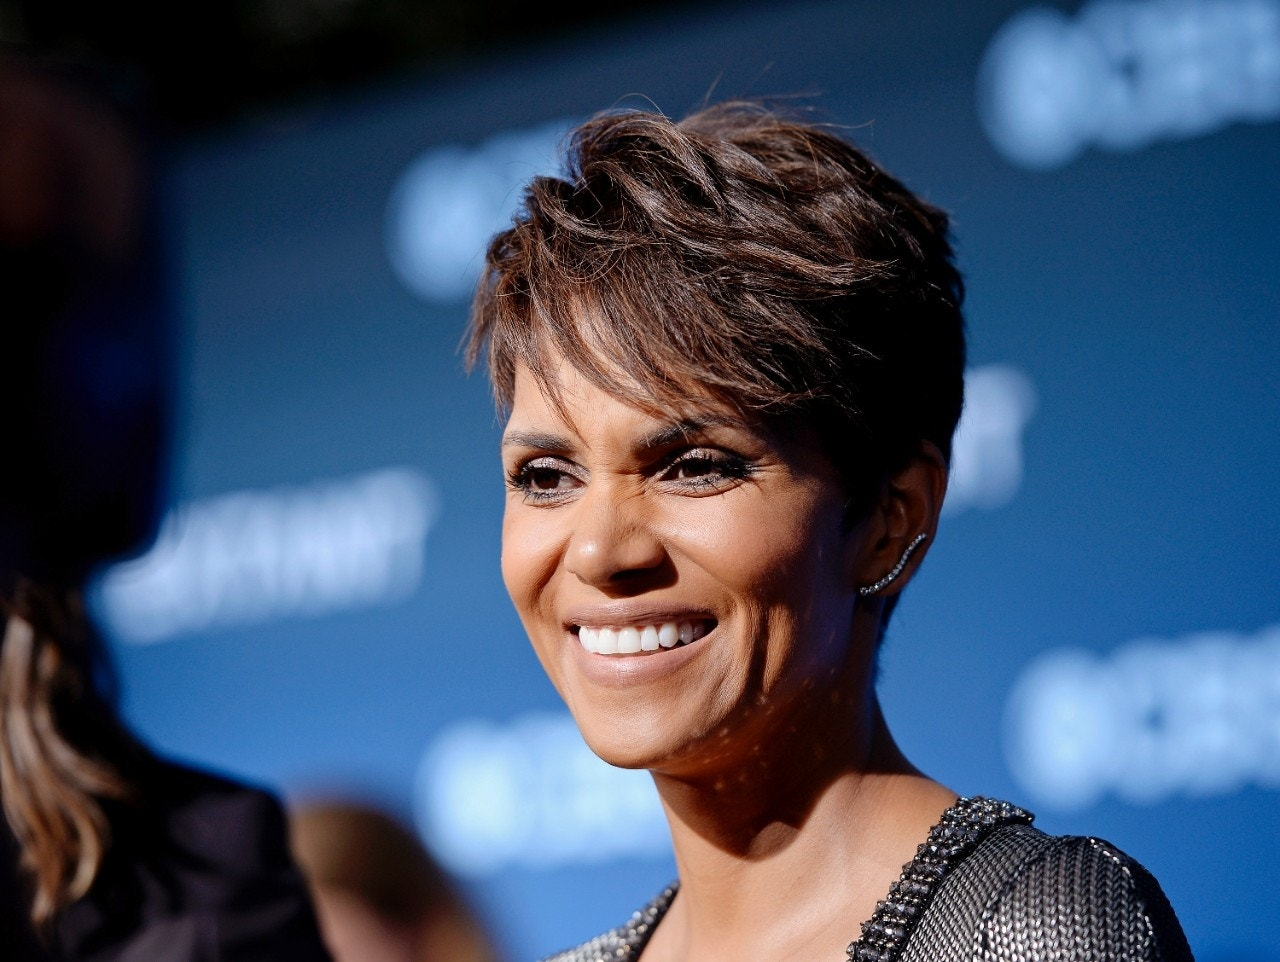 Halle Berry says plastic surgery pushed like crack in Hollywood